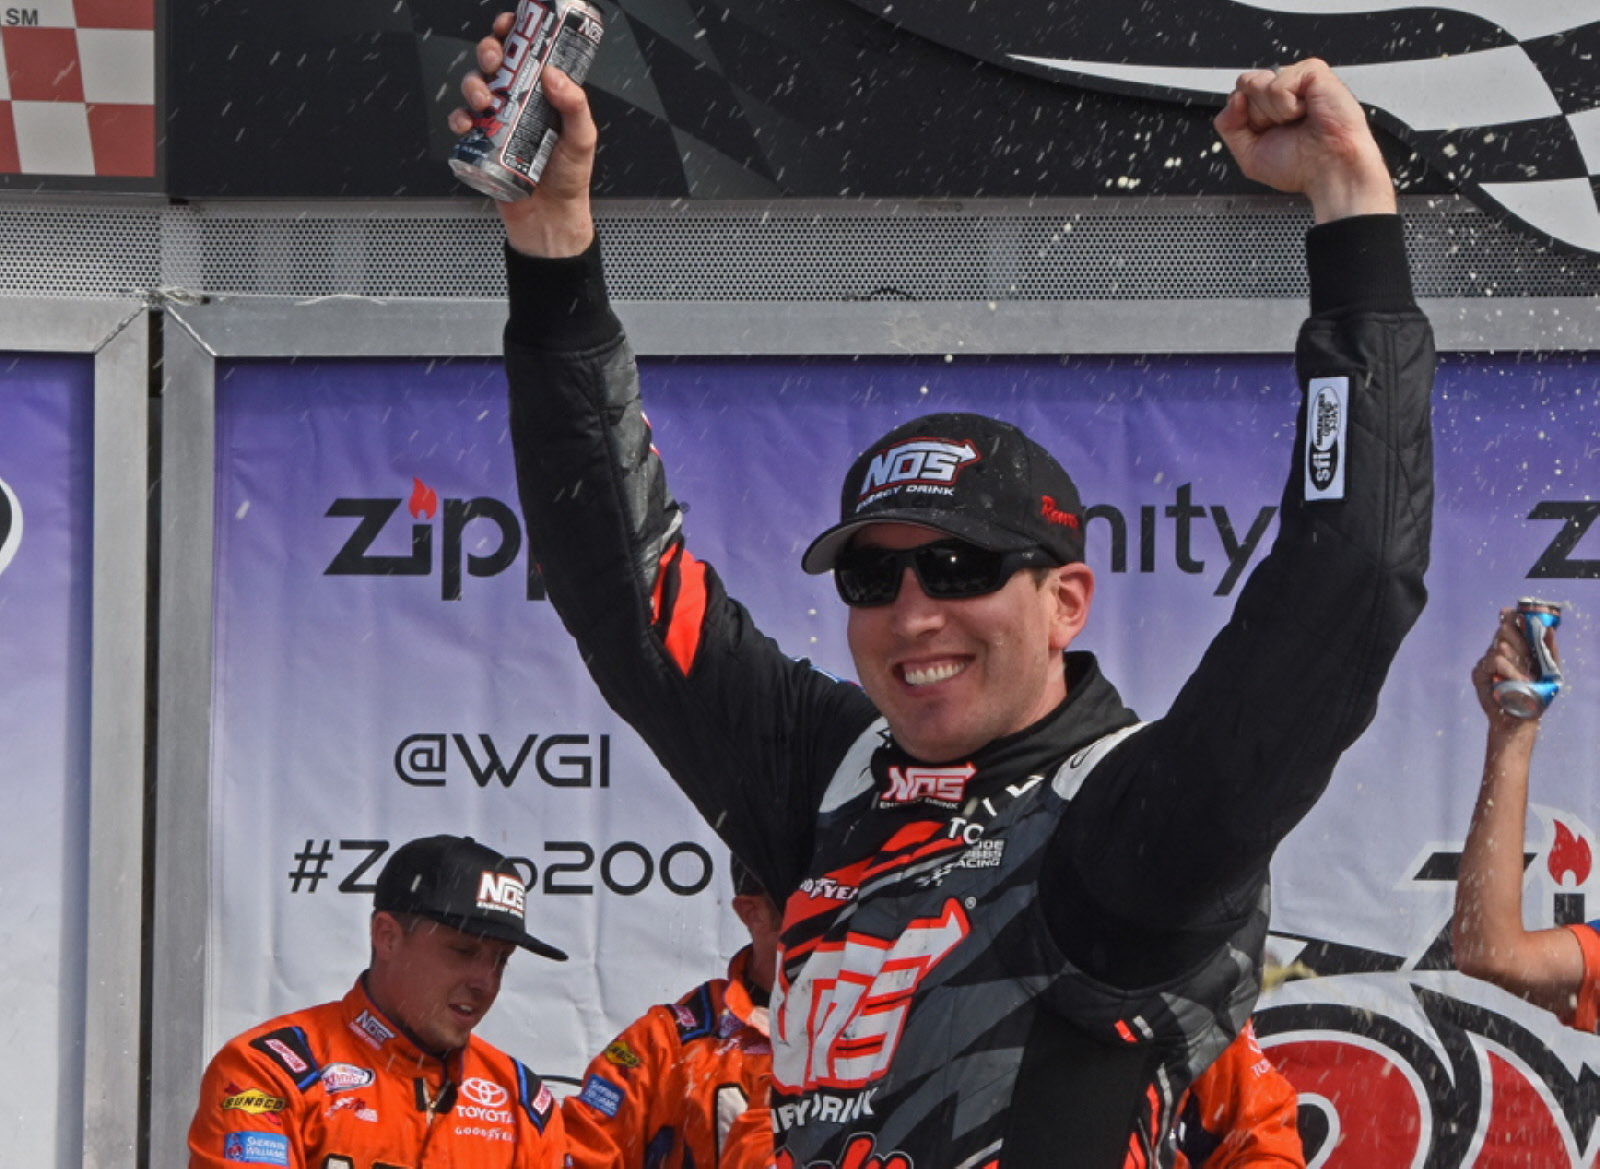 Kyle Busch all smiles in victory lane after scoring his first Xfinity win at the Glen. [Joe Jennings Photo]